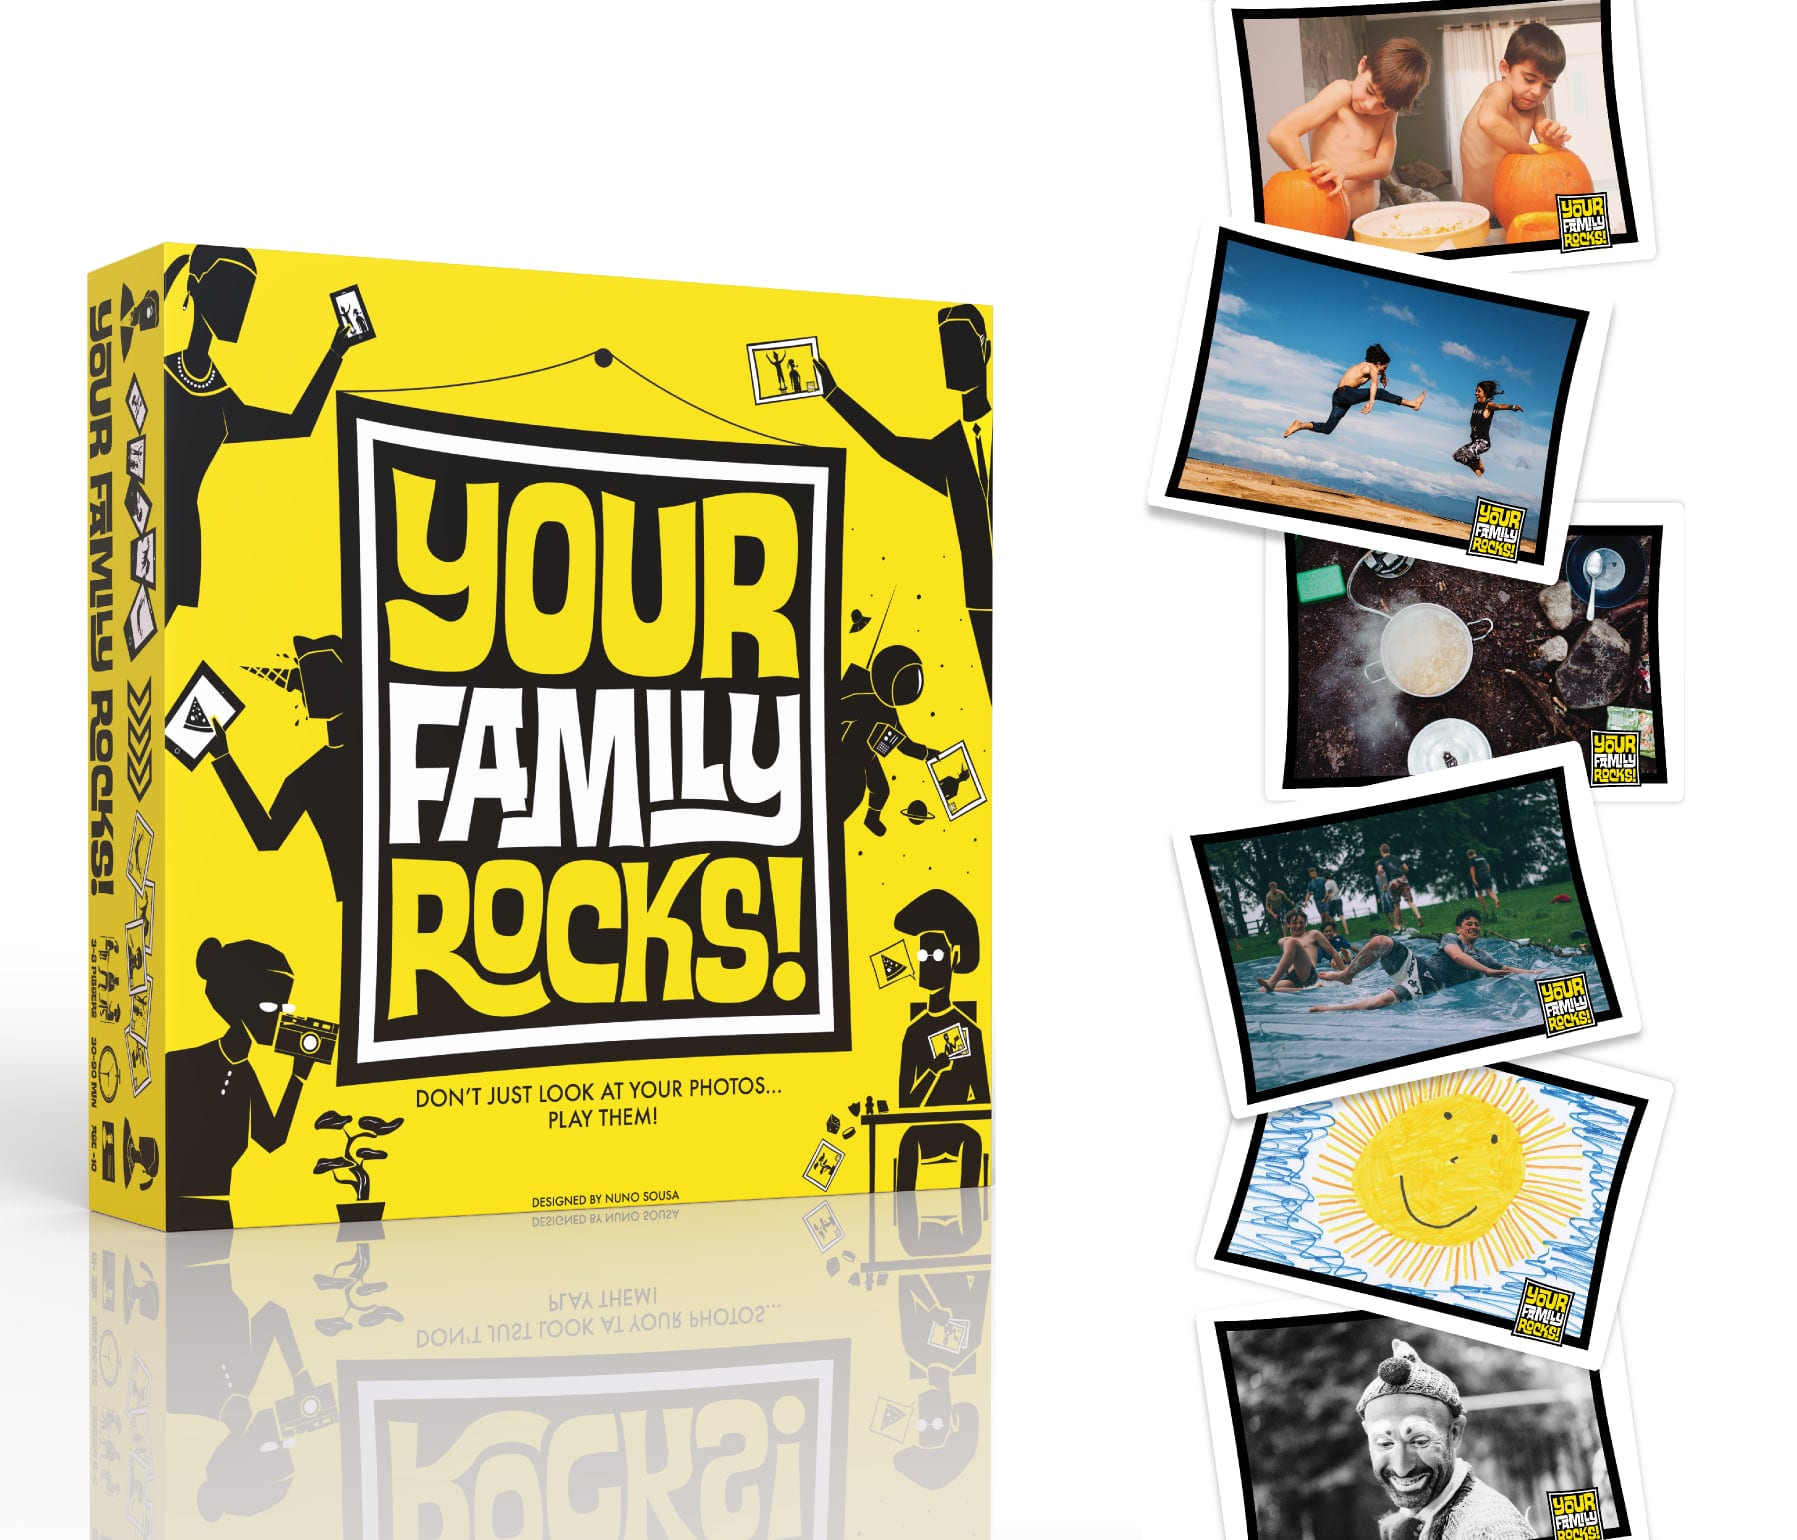 your family rocks!